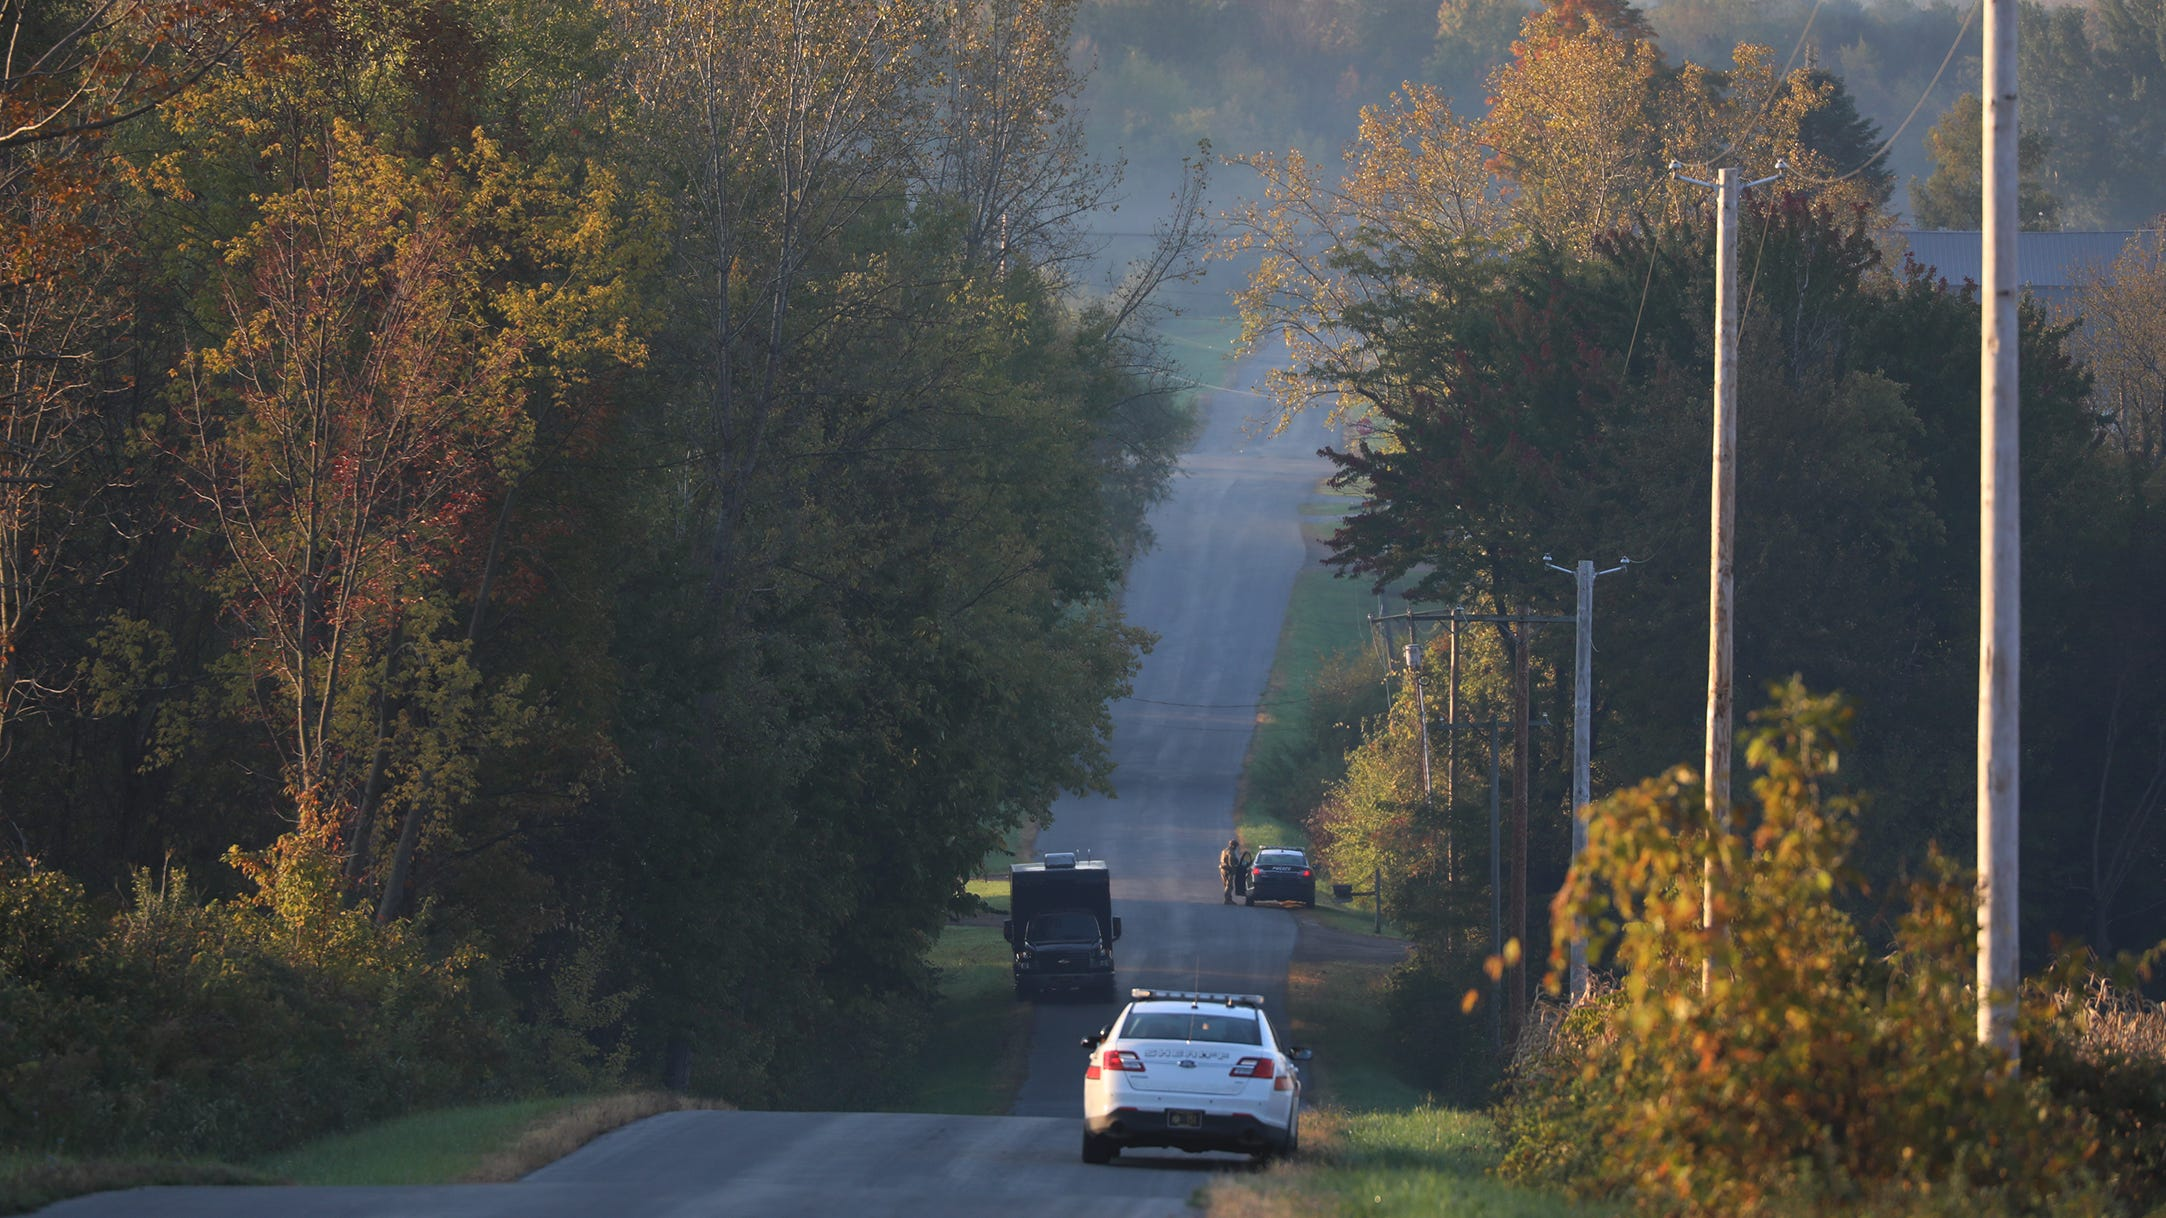 Sodus community ponders what a year marked by violence means for their small town